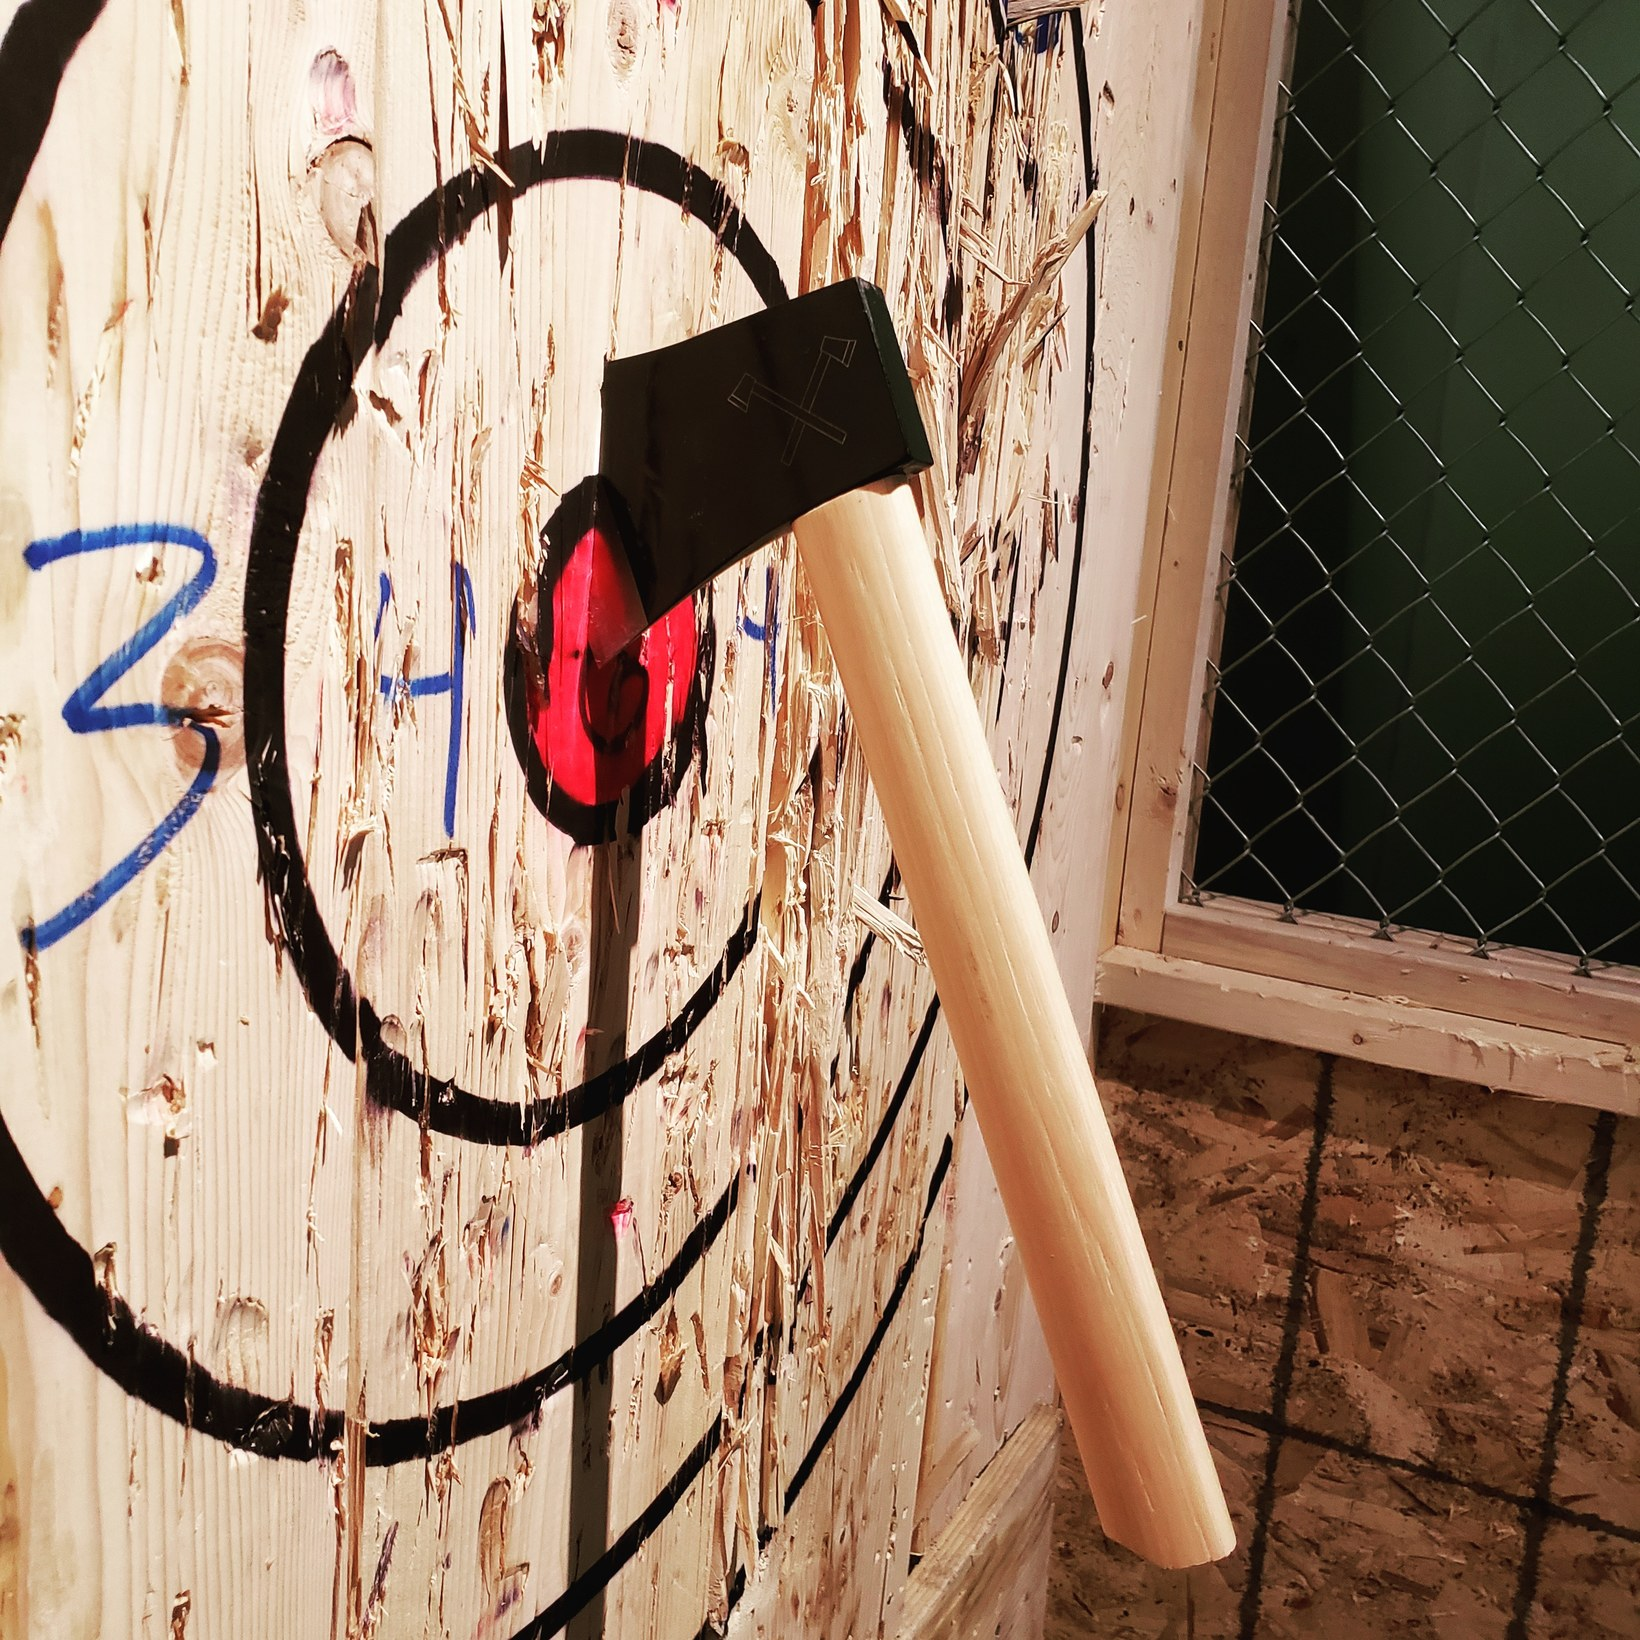 We build Champion Axe Throwers!